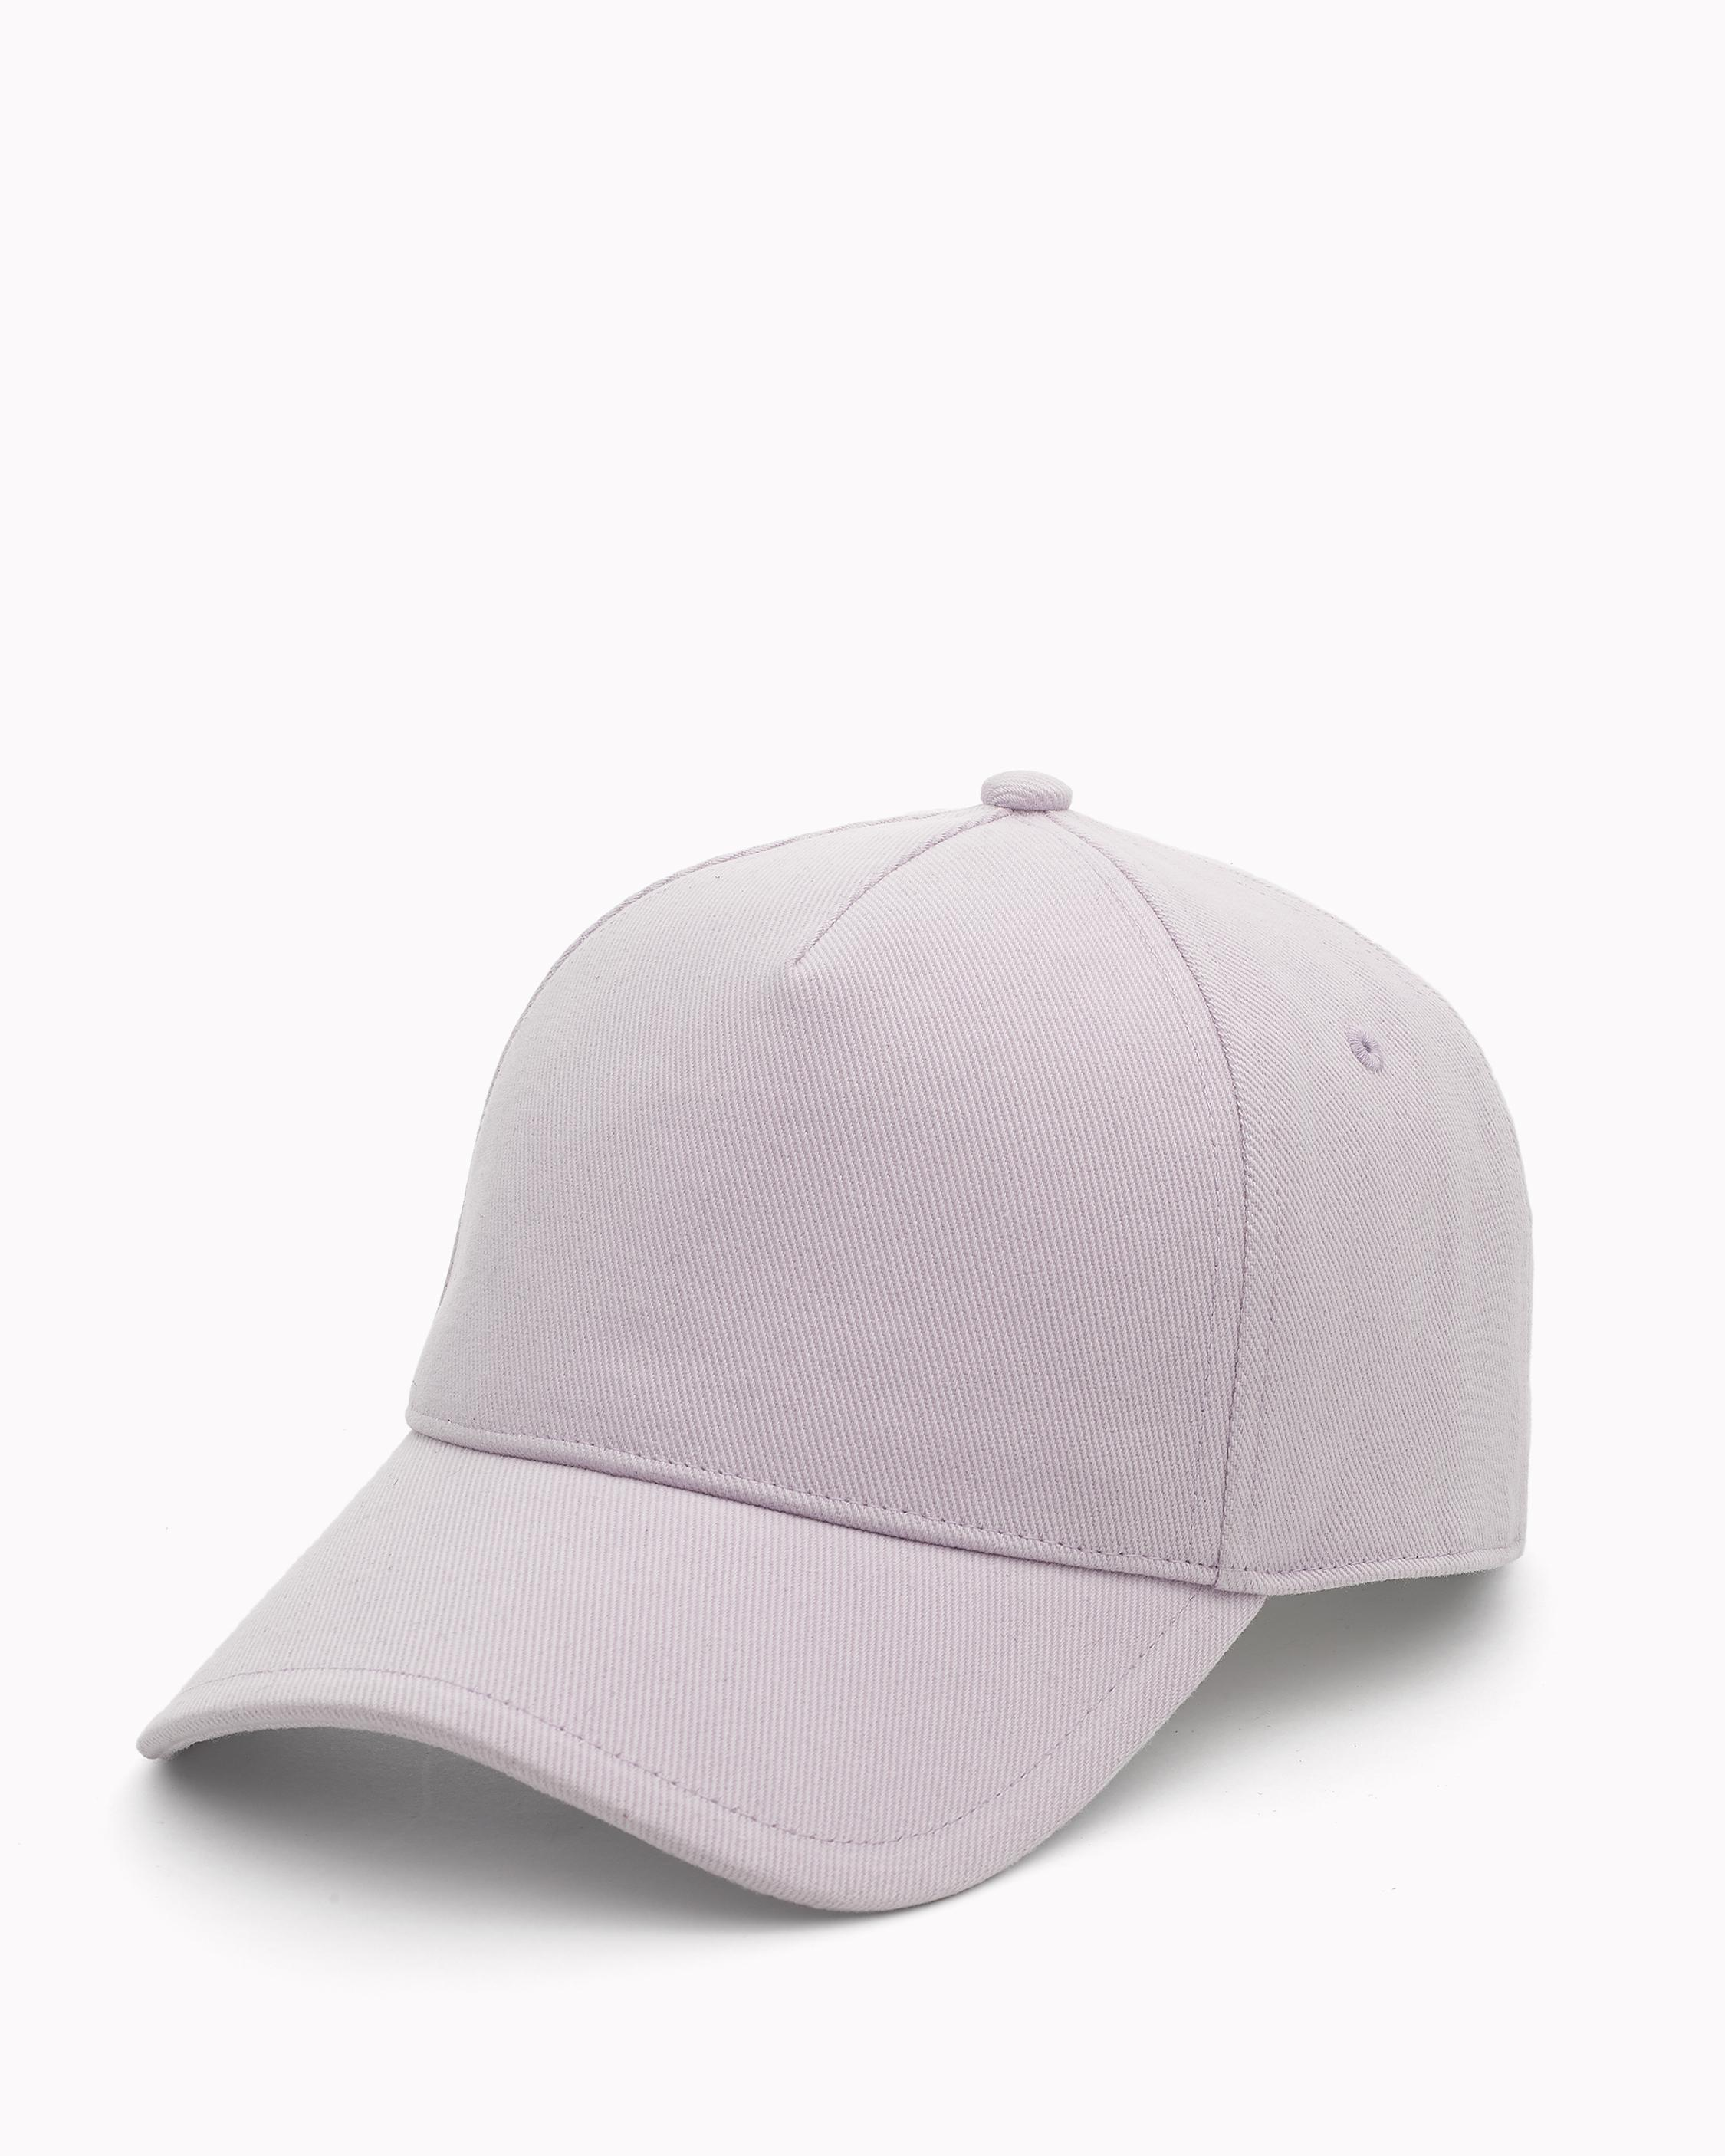 ACCESSORIES - Hats Fine Edge jqwRdkQV2L